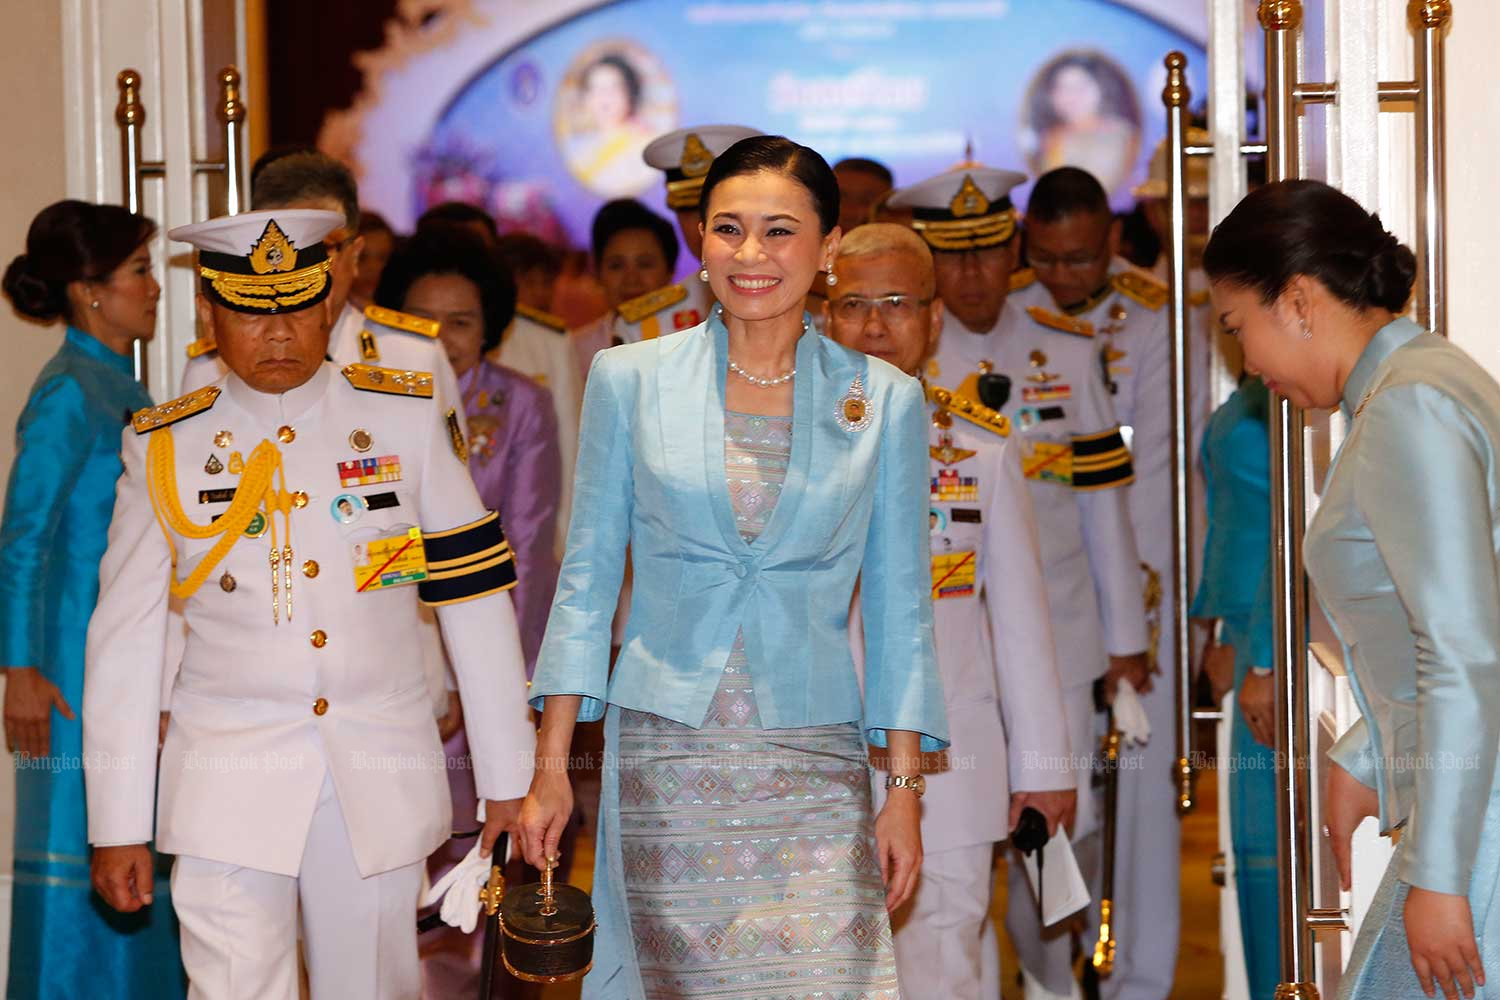 Her Majesty the Queen presides over an event marking National Women's Day on Thursday. (Photo by Pattarapong Chatpattarasill)